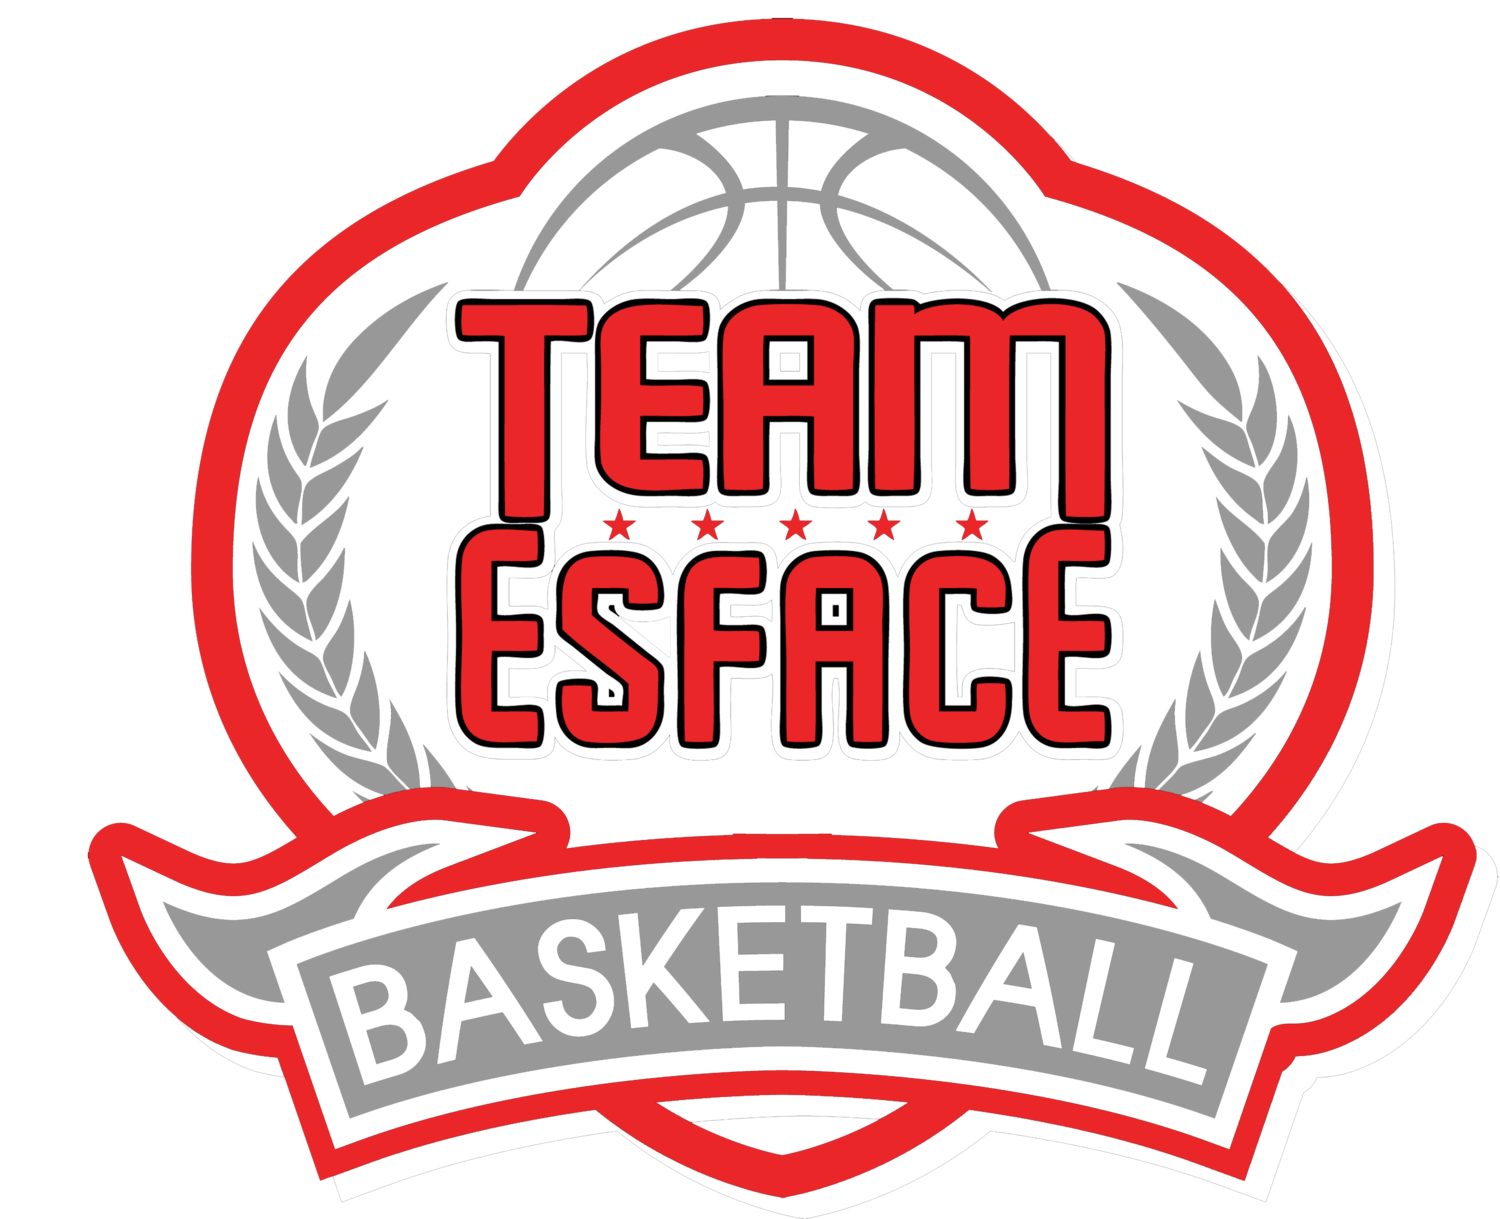 Team Esface Basketball Academy